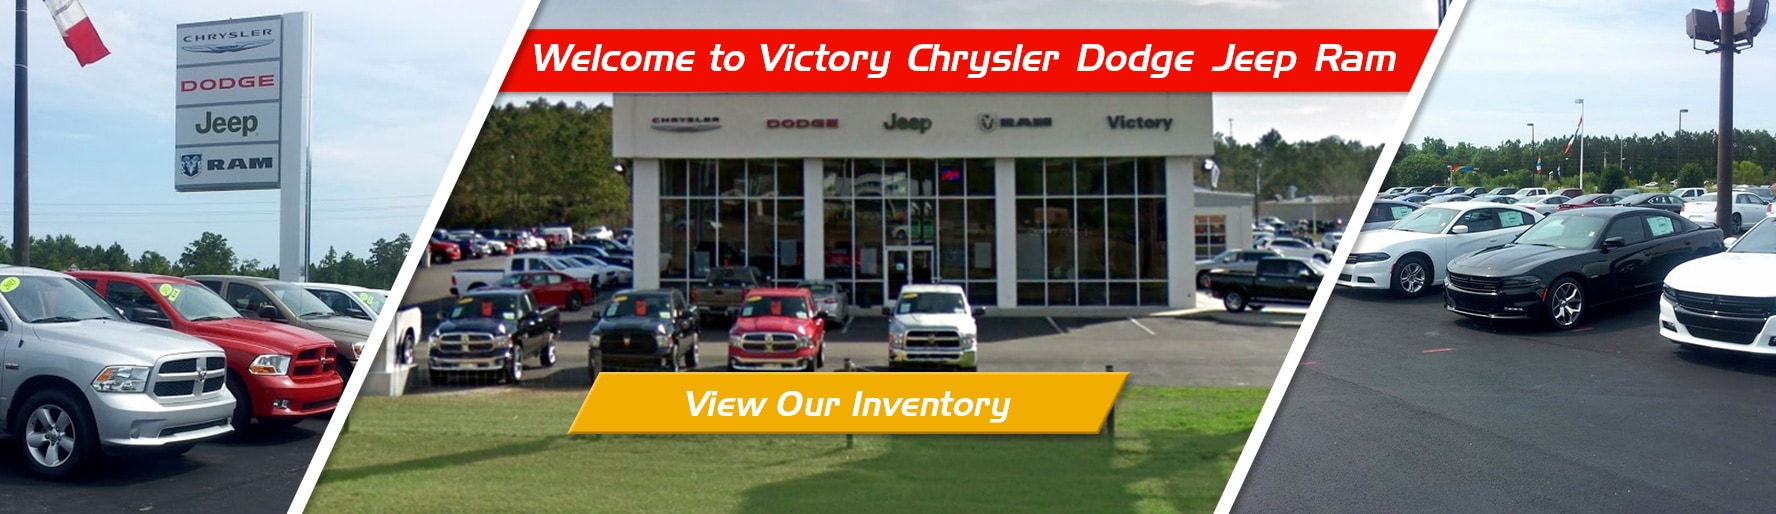 Victory chrysler dodge jeep ram 2019 2020 new car for Victory motors rome ny